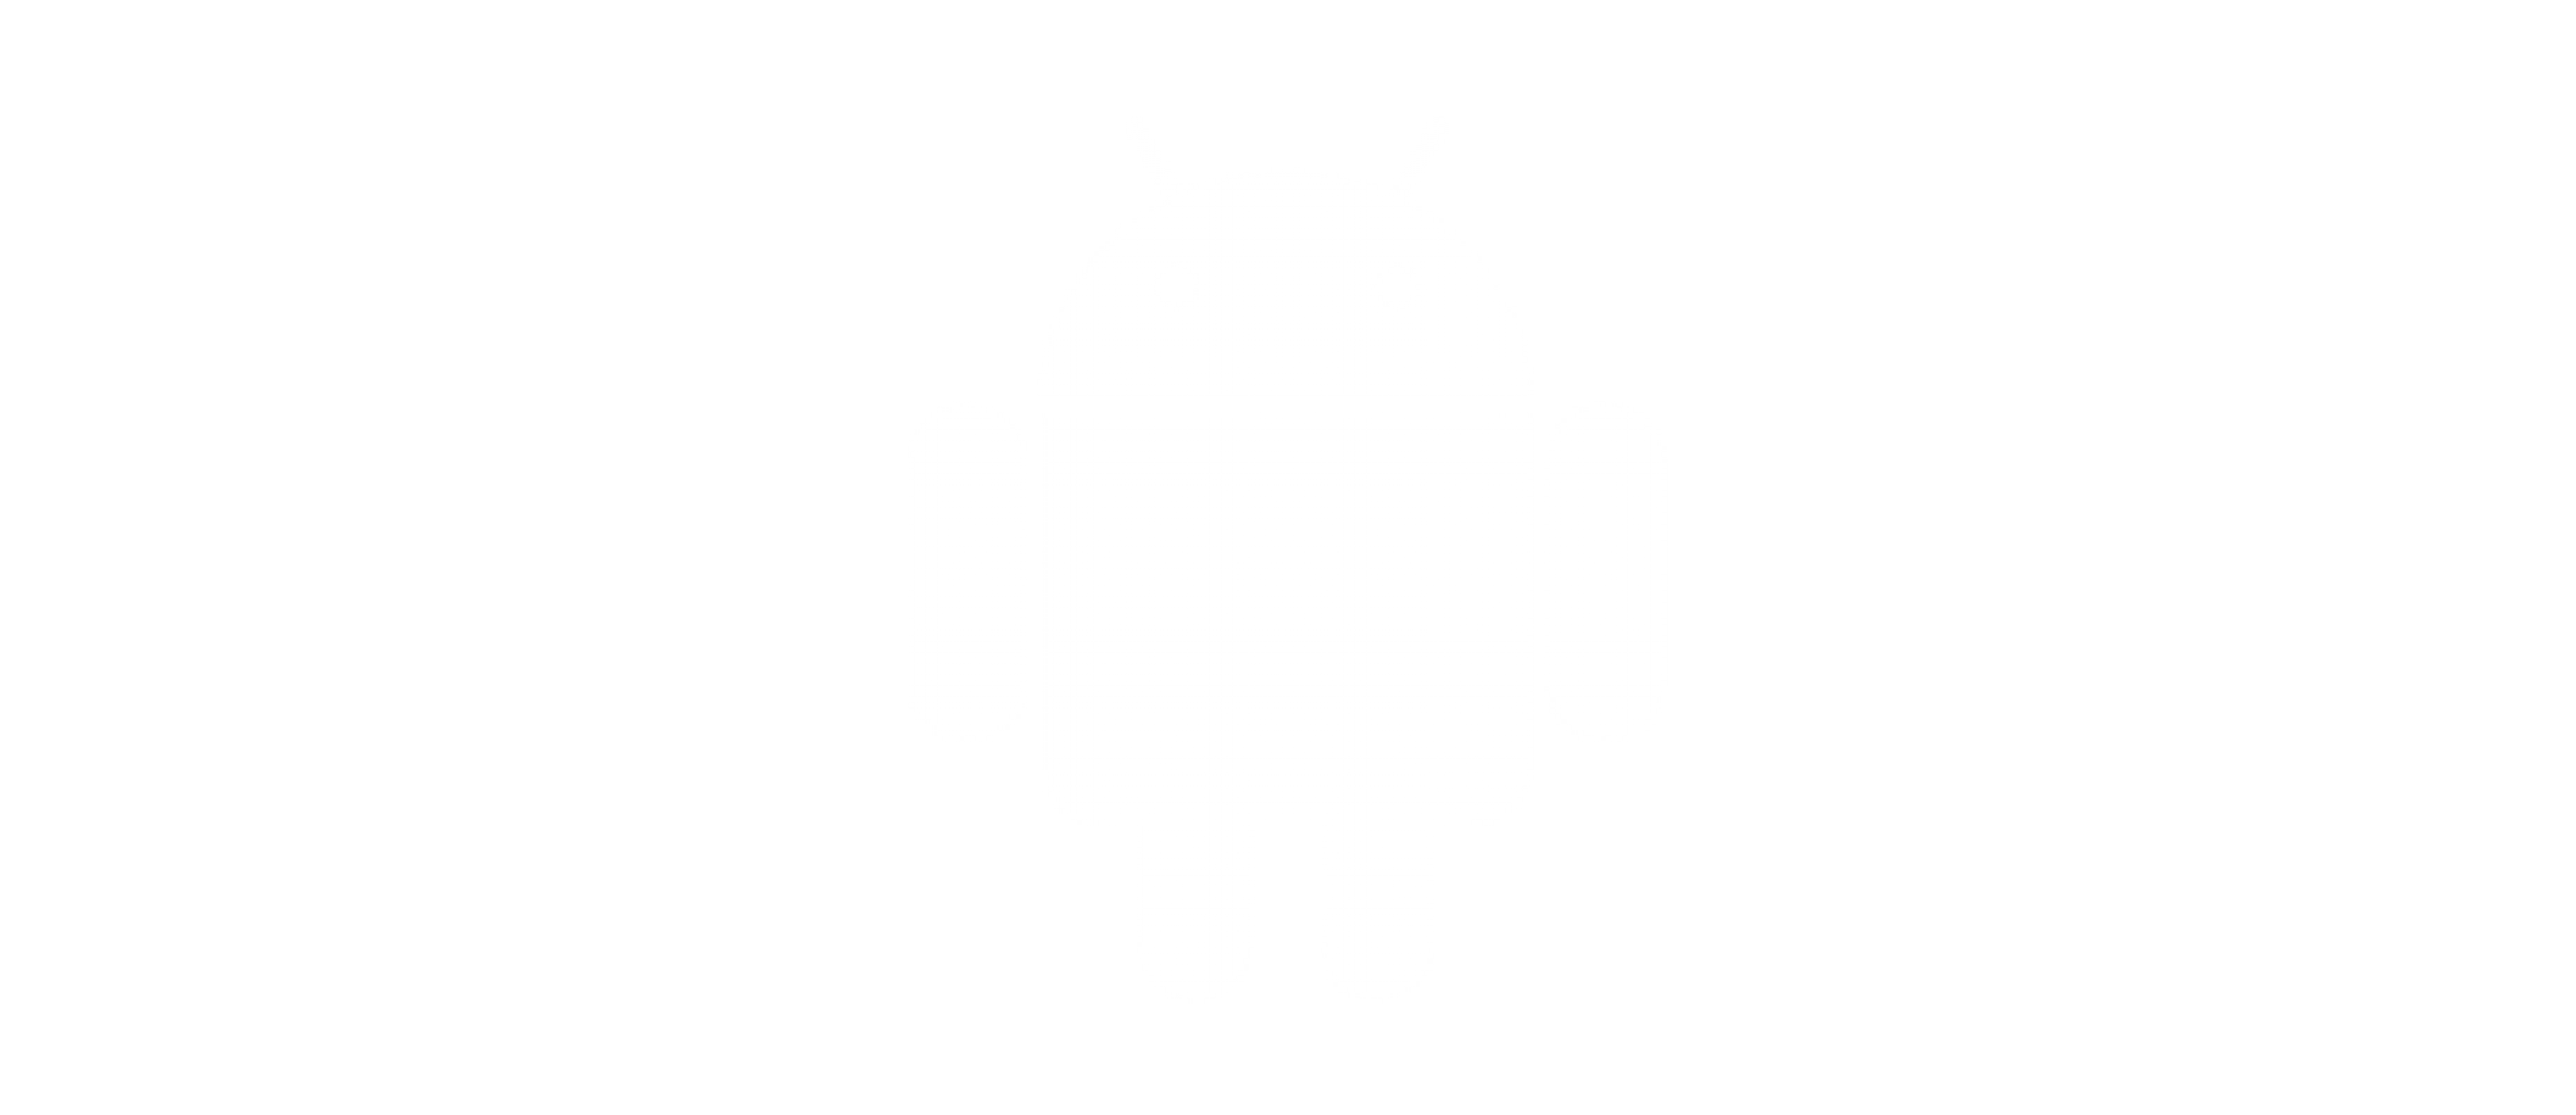 Conectar a WiFi en dispositivos Android